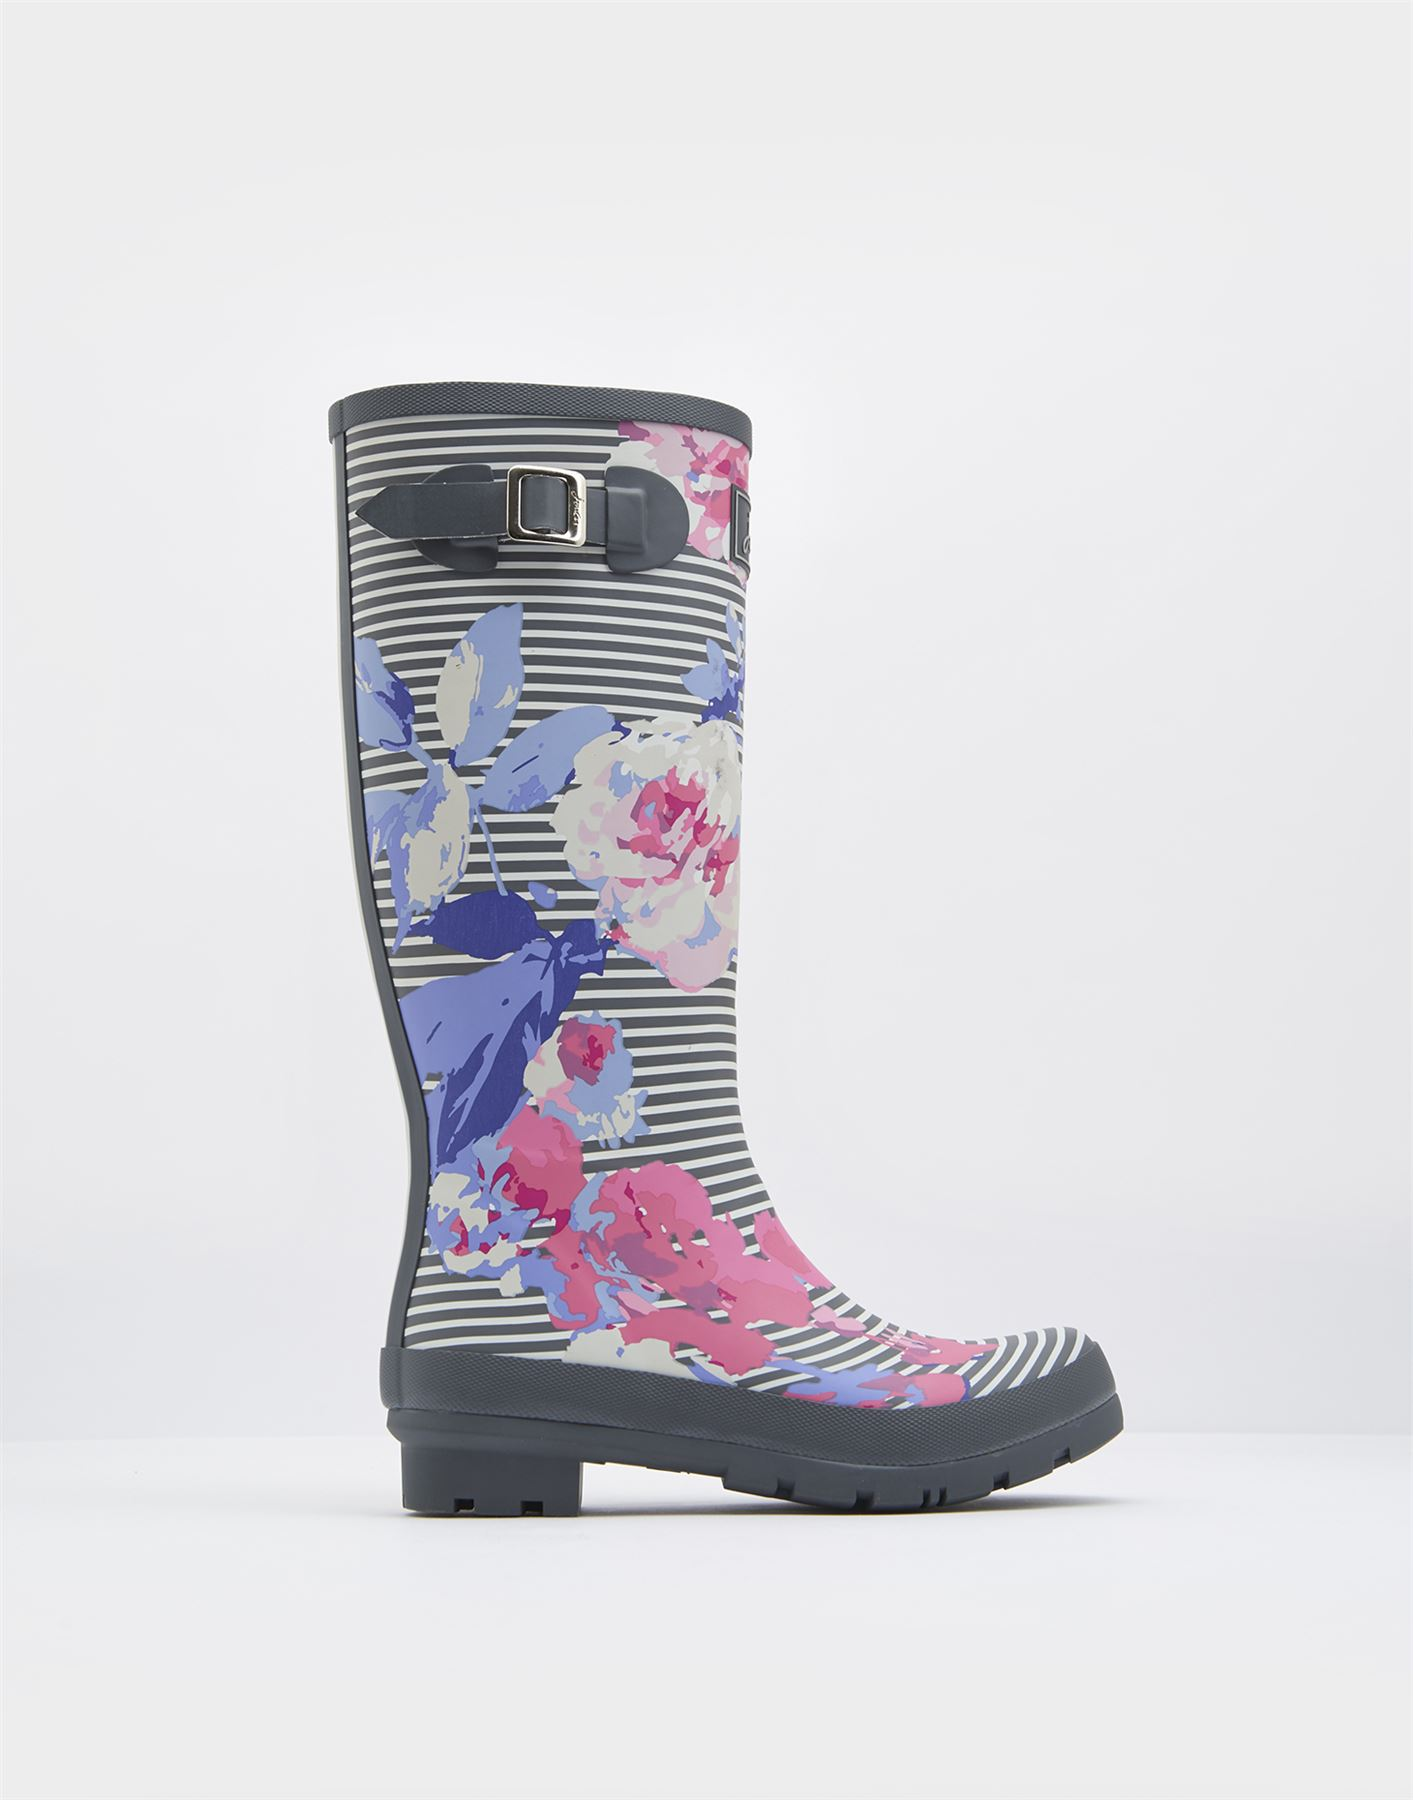 Joules-Wellyprint-Printed-Wellies-Wellington-Boots-FREE-P-amp-P